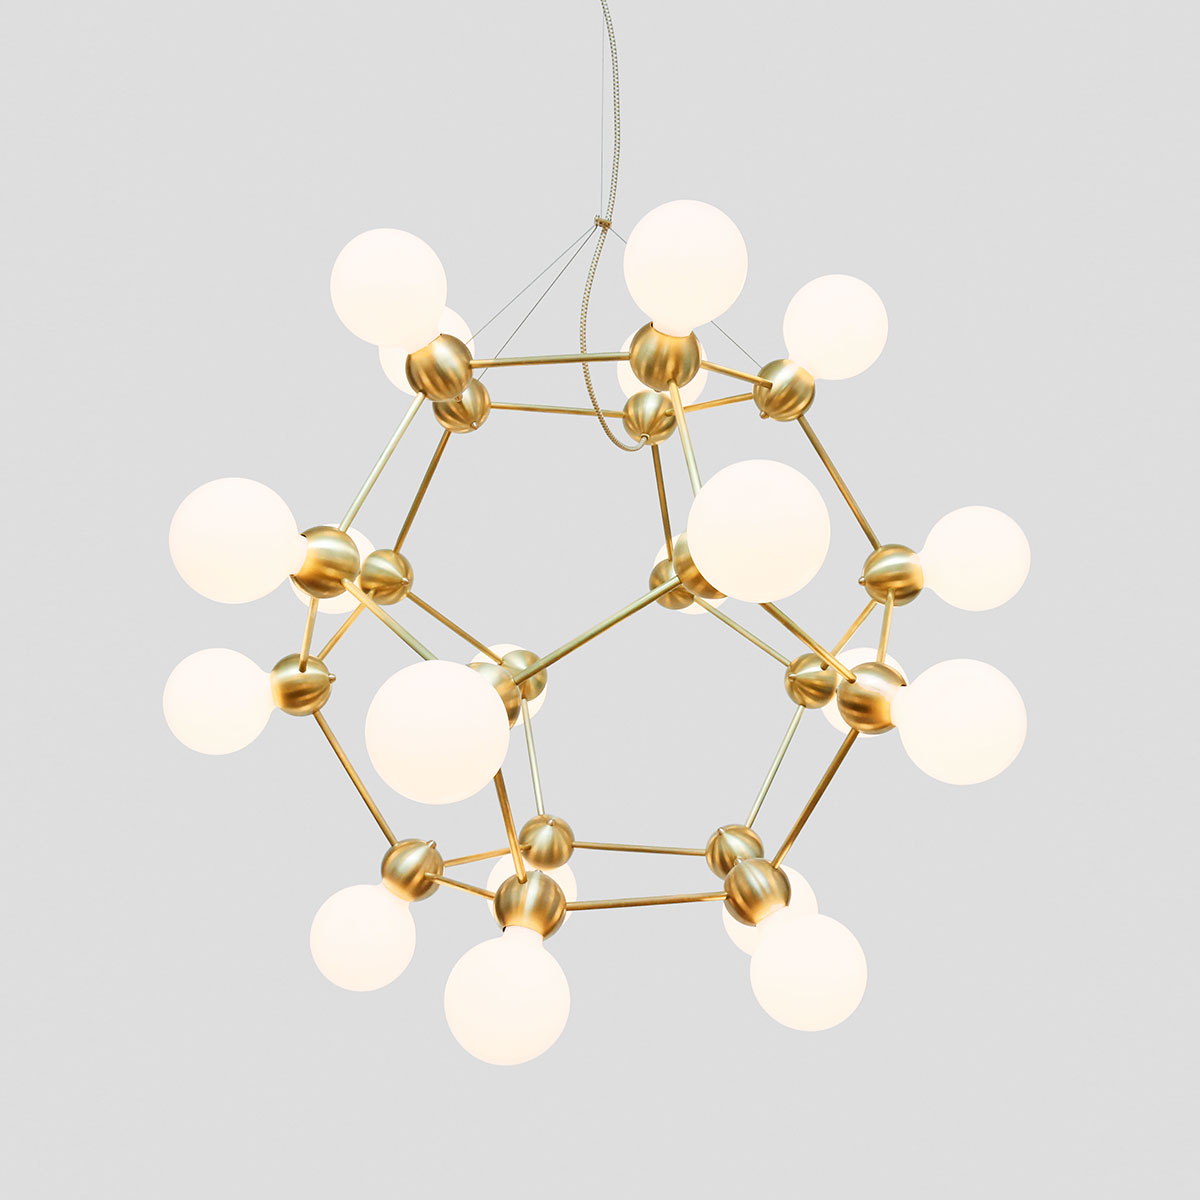 LINA 20-LIGHT LG CHANDELIER    See Lina series